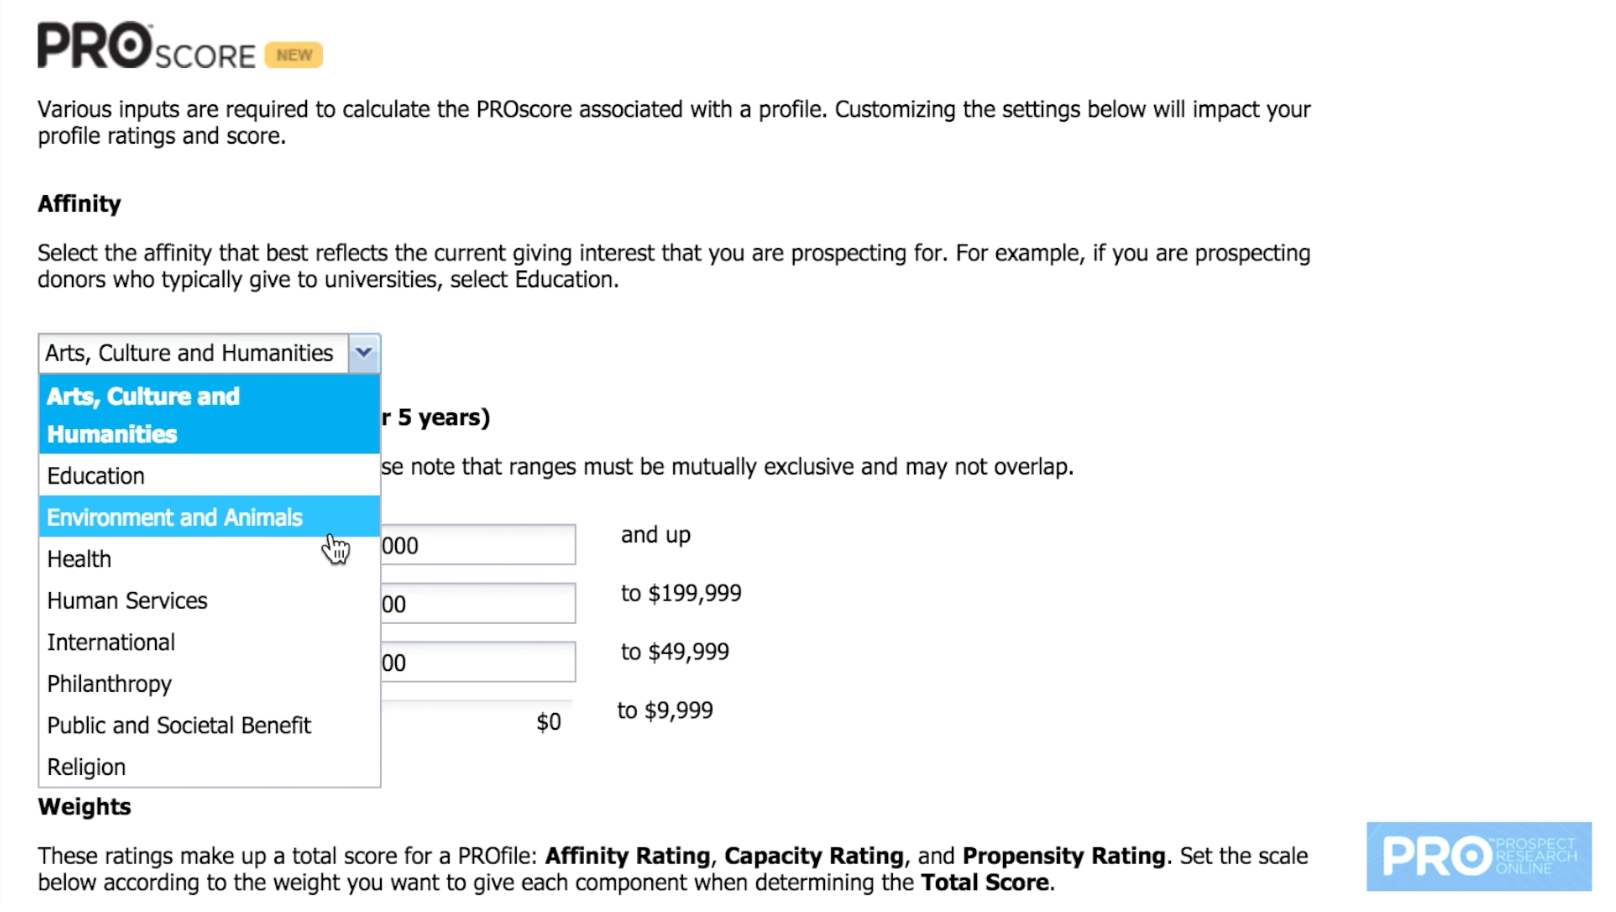 Users can select the organization type to rate each prospect's connection to specific sectors